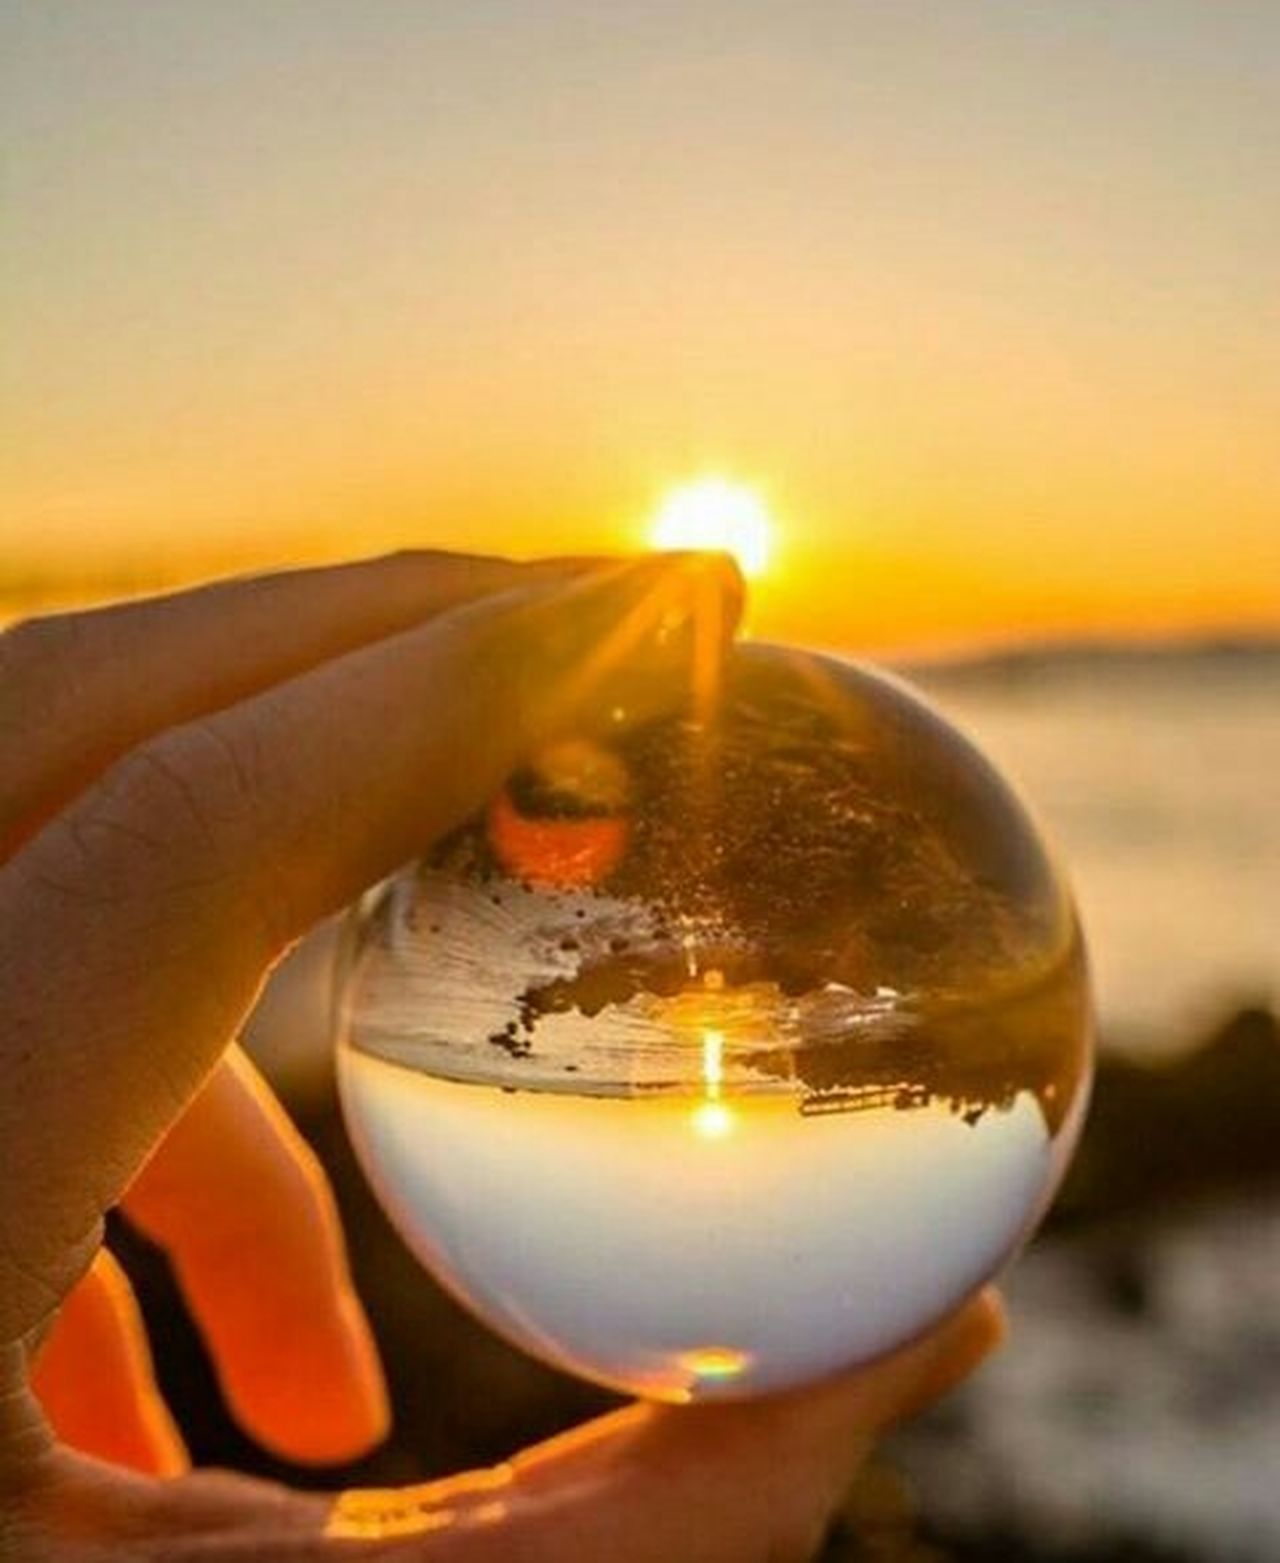 Glassballphotography Sunstet See The Beauty The Big Picture